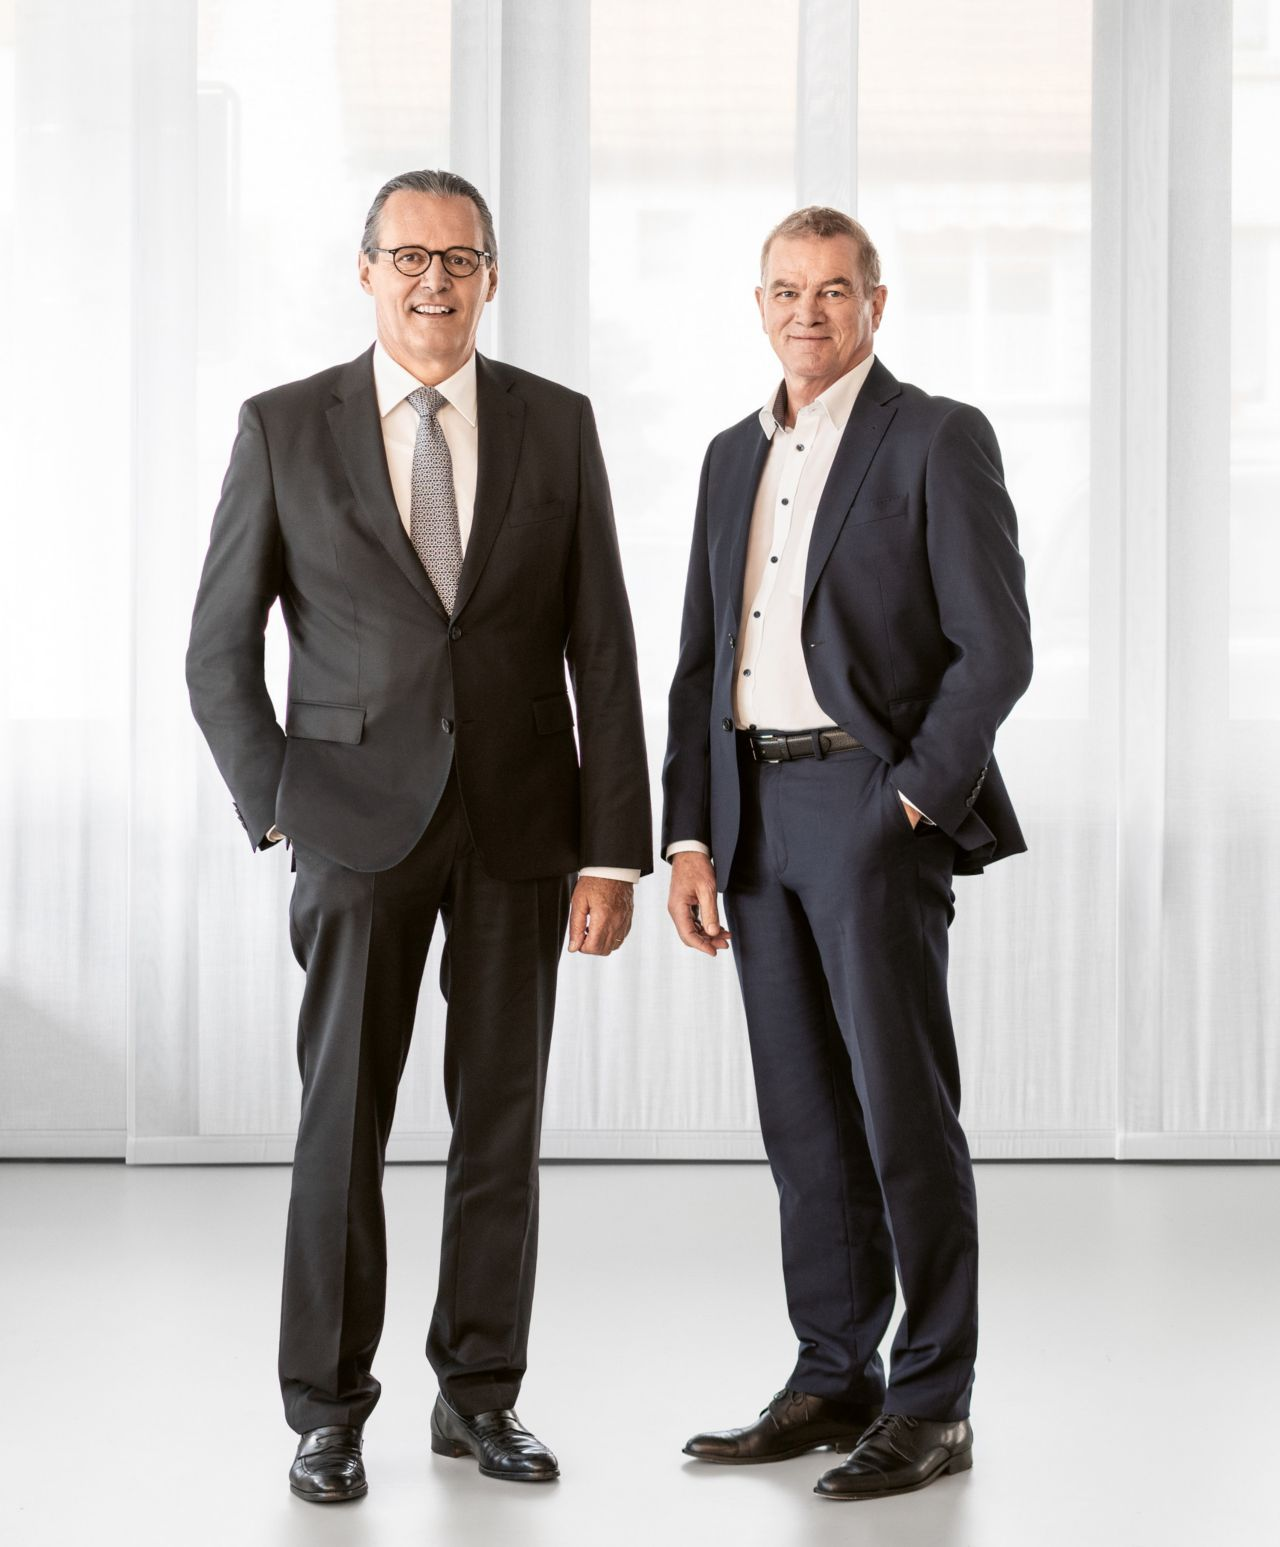 Paul Hälg, Chair of the Board of Directors, and Paul Schuler,  Chief Executive Officer